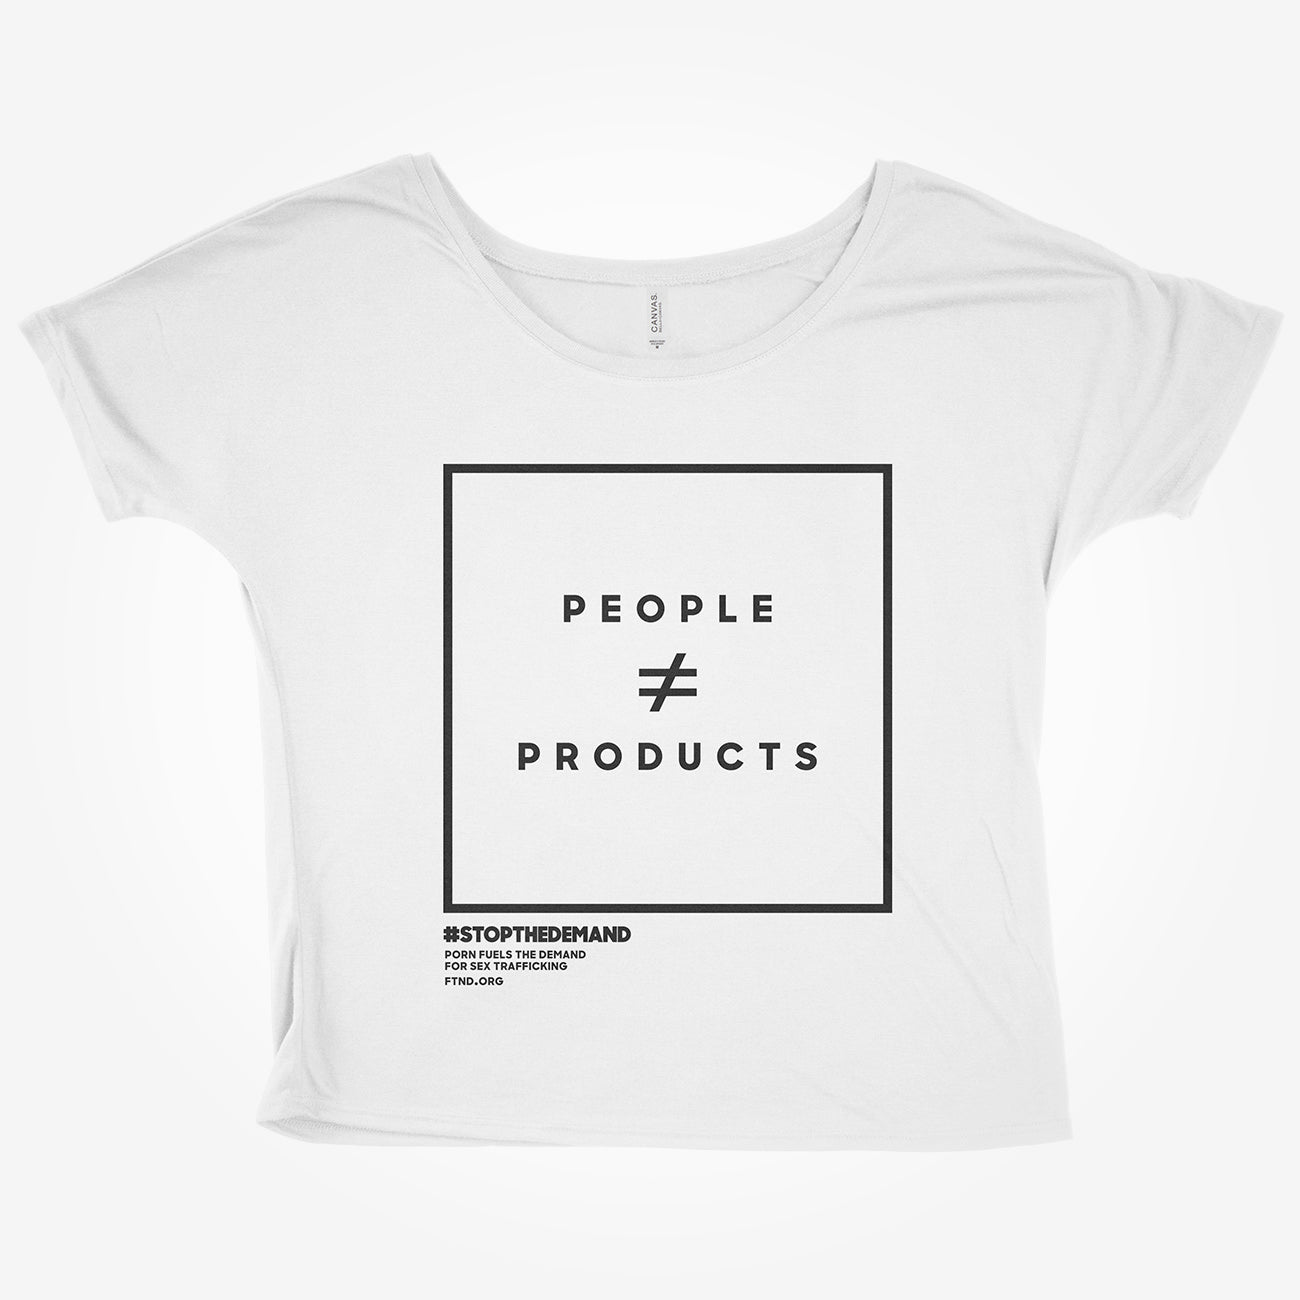 'People ≠ Products' - Slouchy